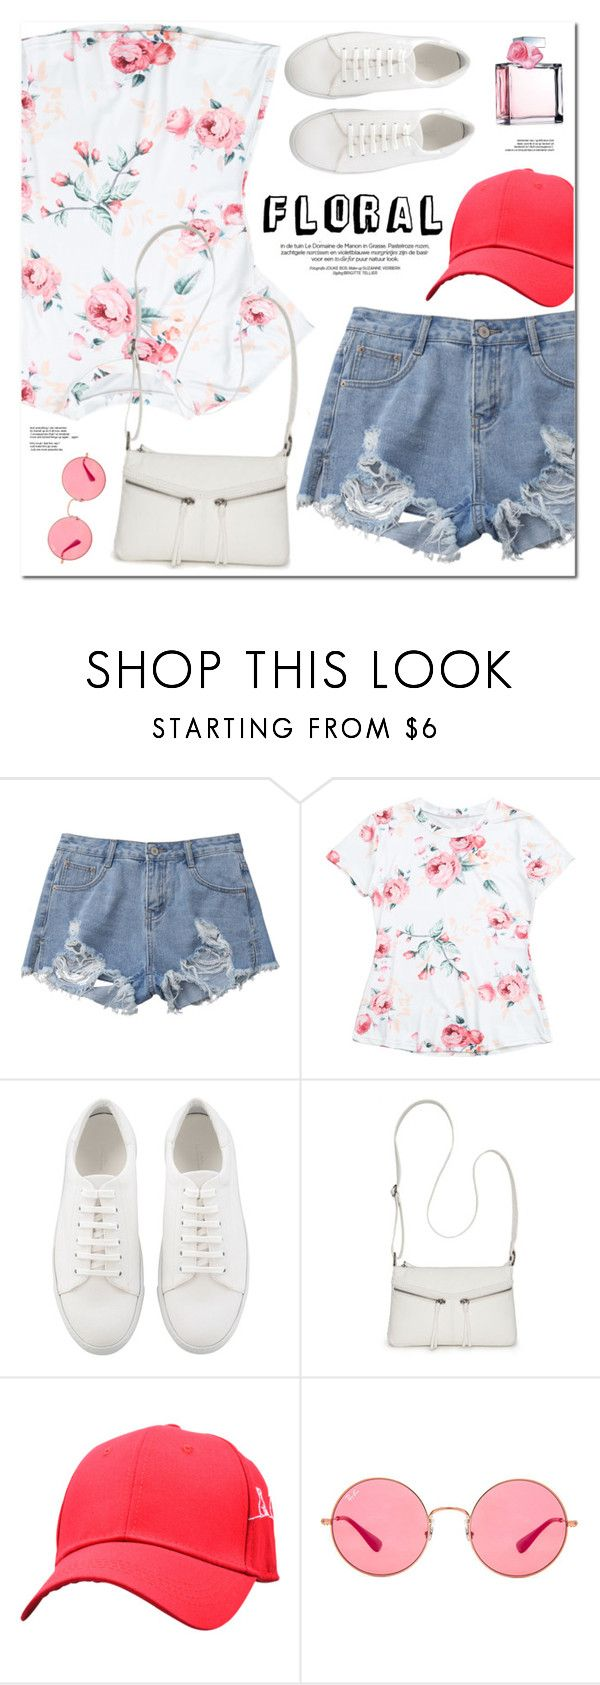 """""""Floral"""" by oshint ❤ liked on Polyvore featuring Bueno, Ray-Ban and Ralph Lauren"""